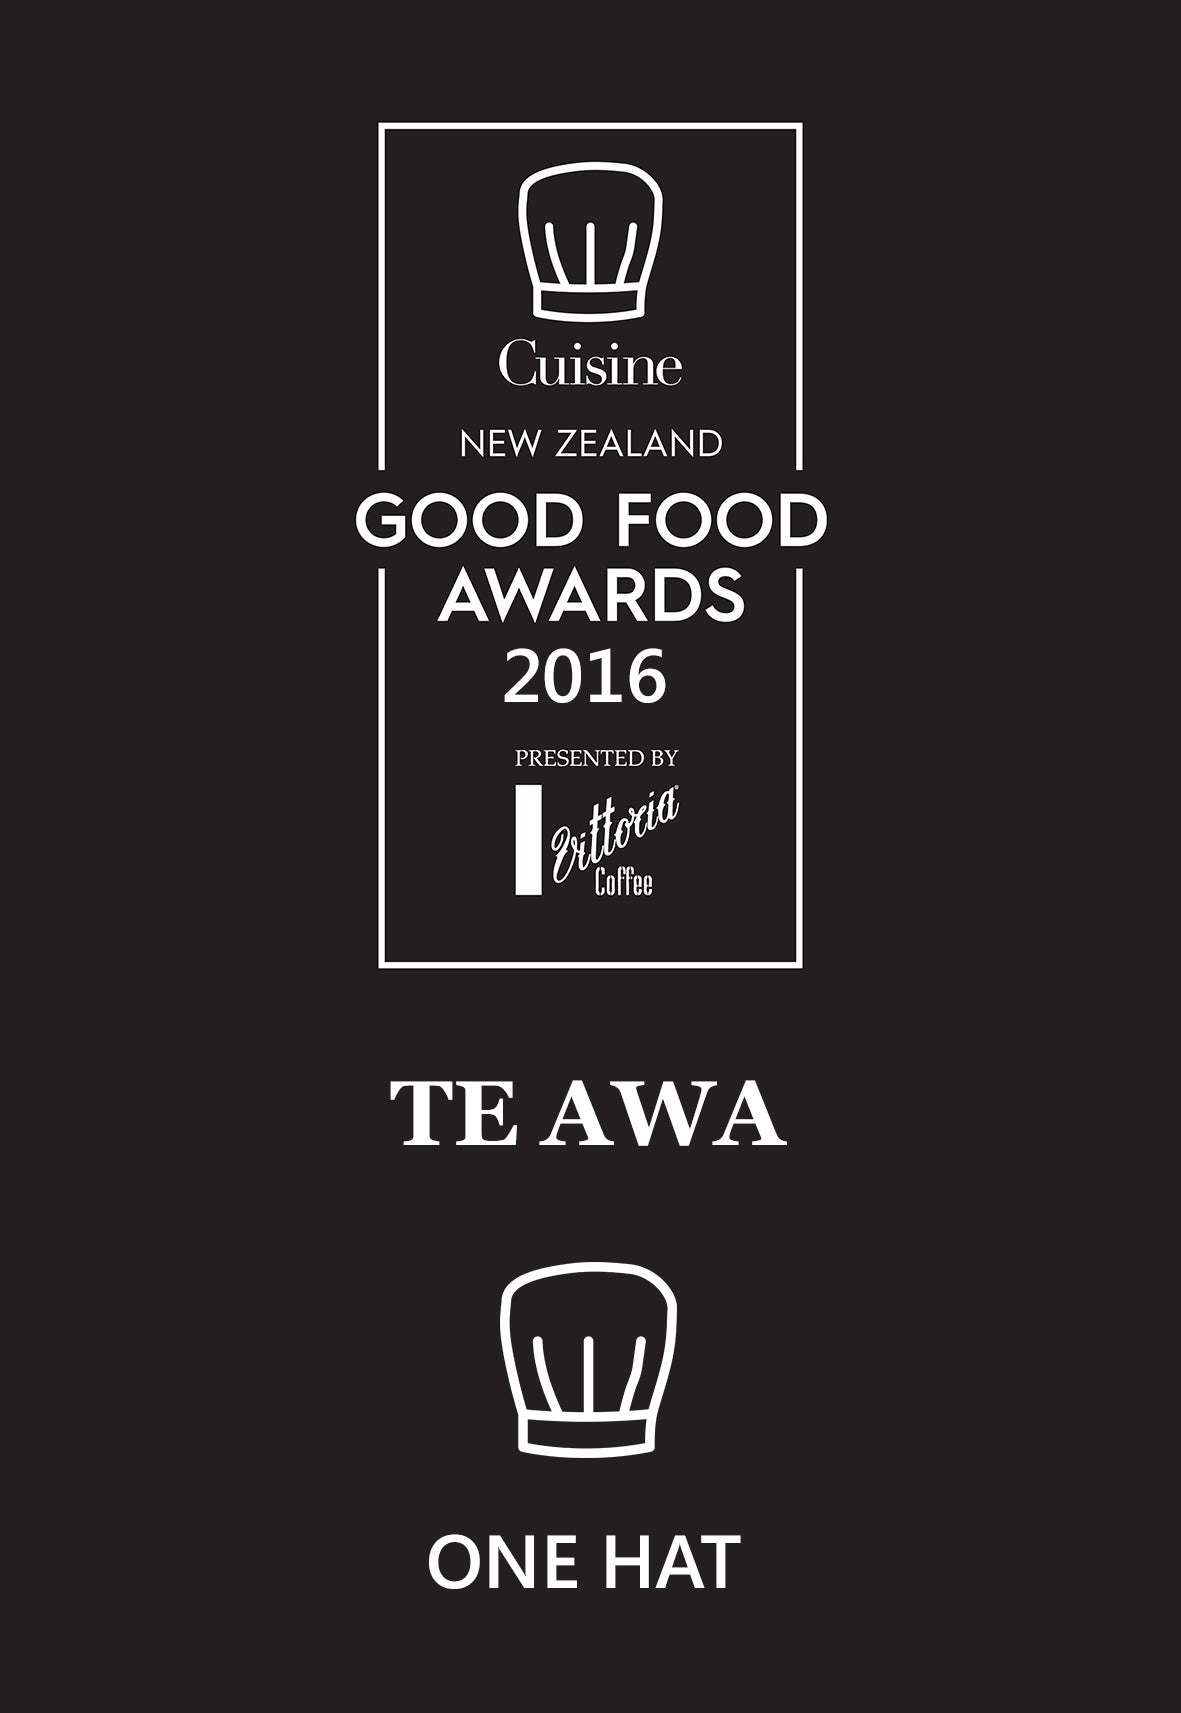 Te Awa Restaurant receives hat at the Cuisine Good Food Awards 2016